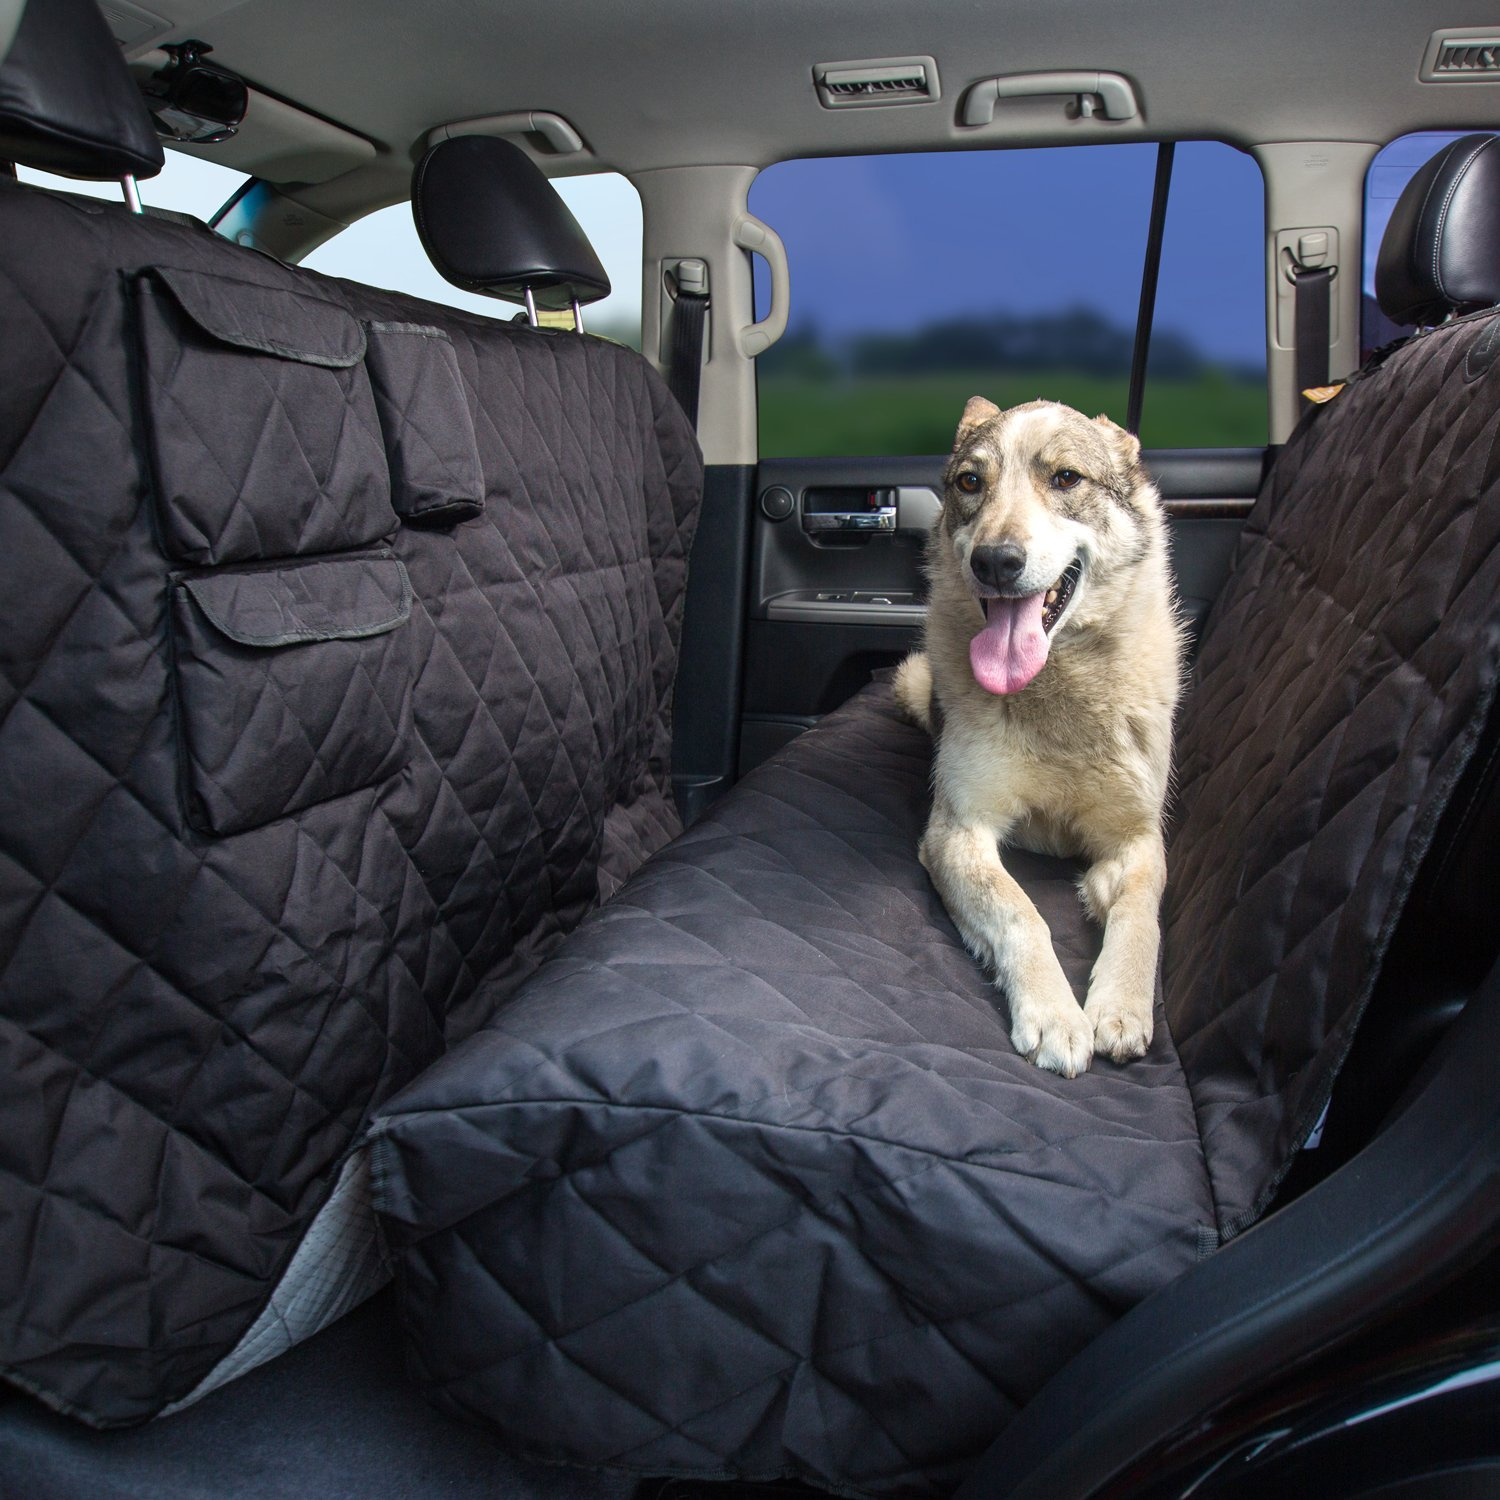 Pet Seat Cover XL - Extra-Large Dog Seat Cover 96''x56'' for Any Cars, Trucks, SUVs, Waterproof, Nonslip, No Odor, Seat Anchors by Tapiona Luxury Pet